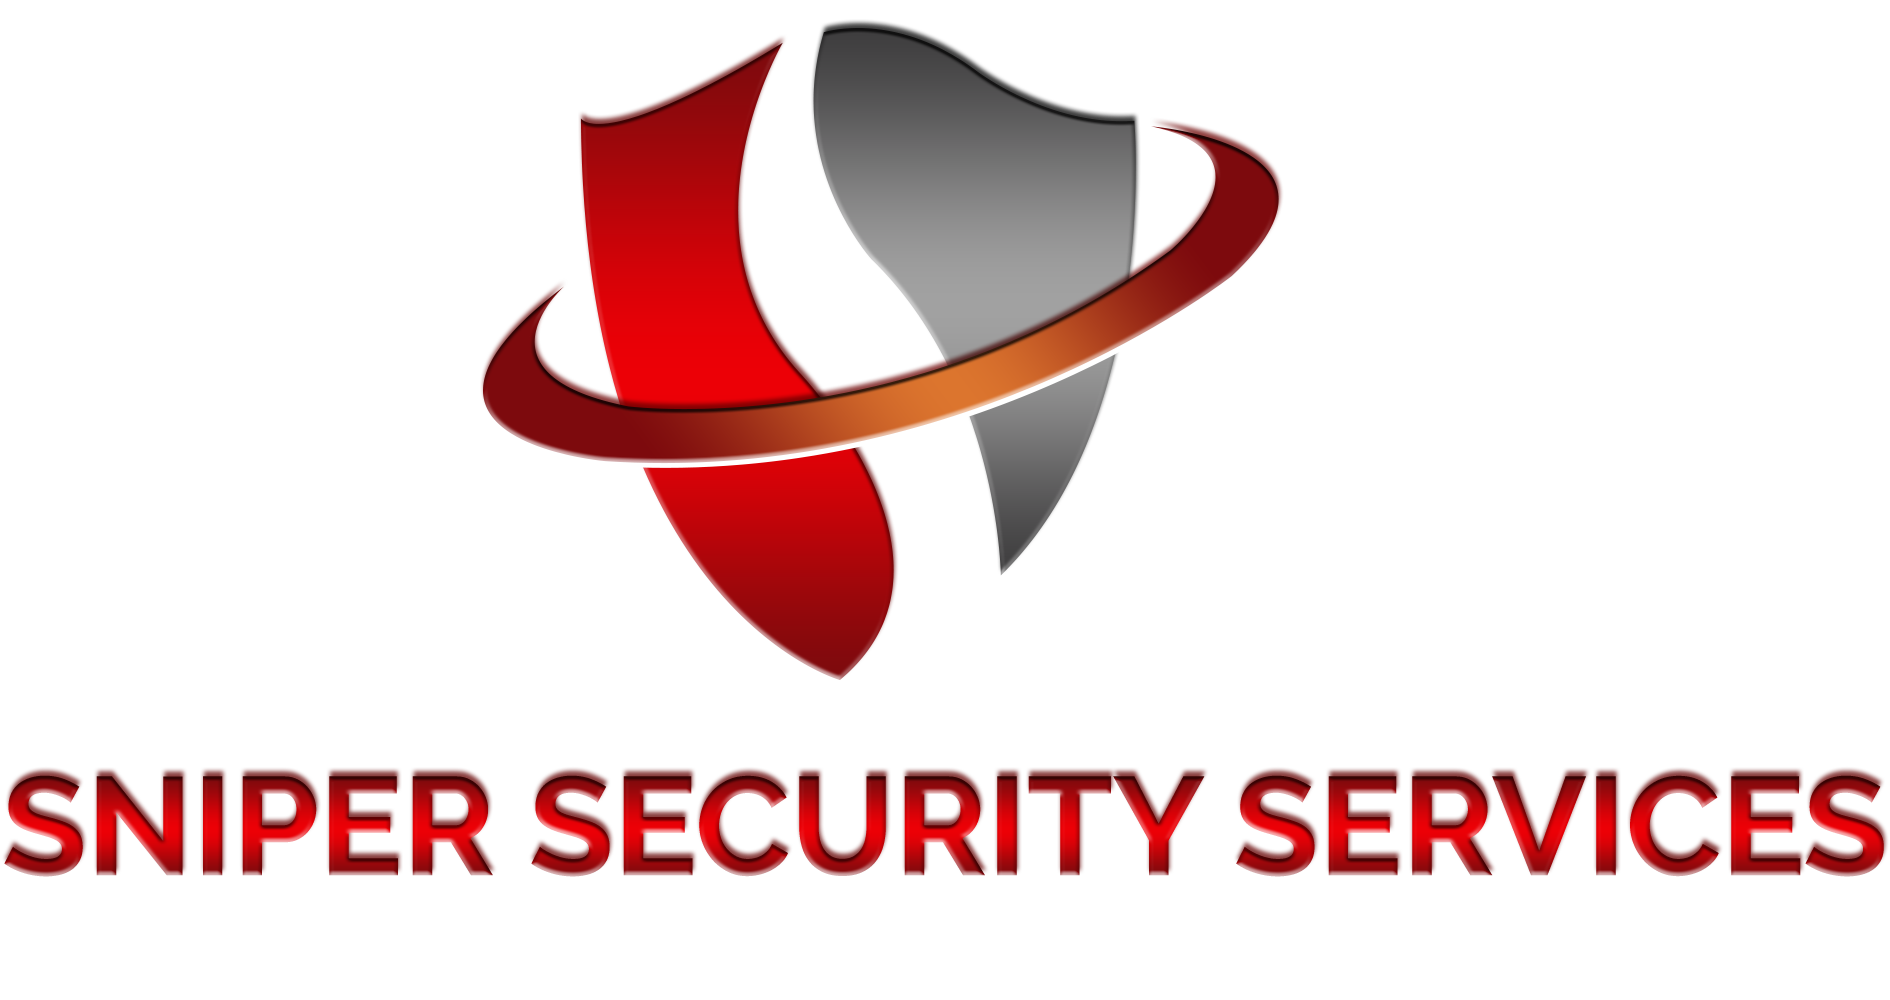 Sniper Security Services